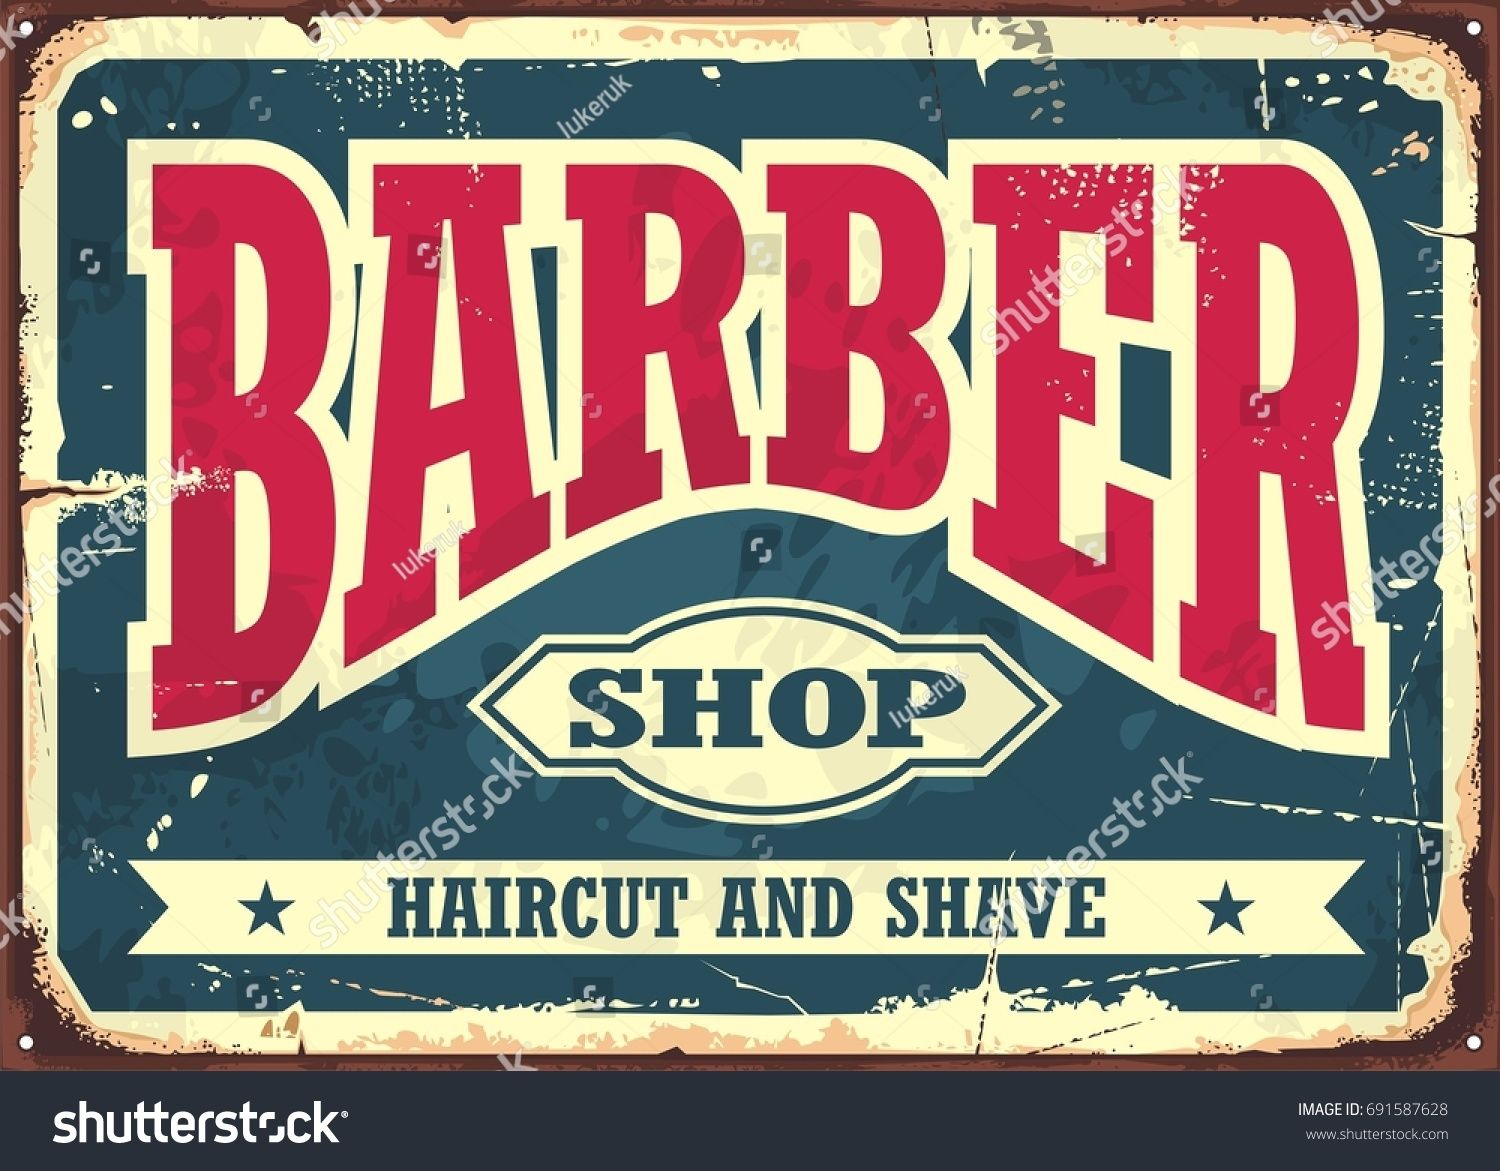 Barber Shop Hipster Haircut And Shave Vintage Sign Template Barbershop Retro Poster Layout Barber Shop Barber Shop Signage